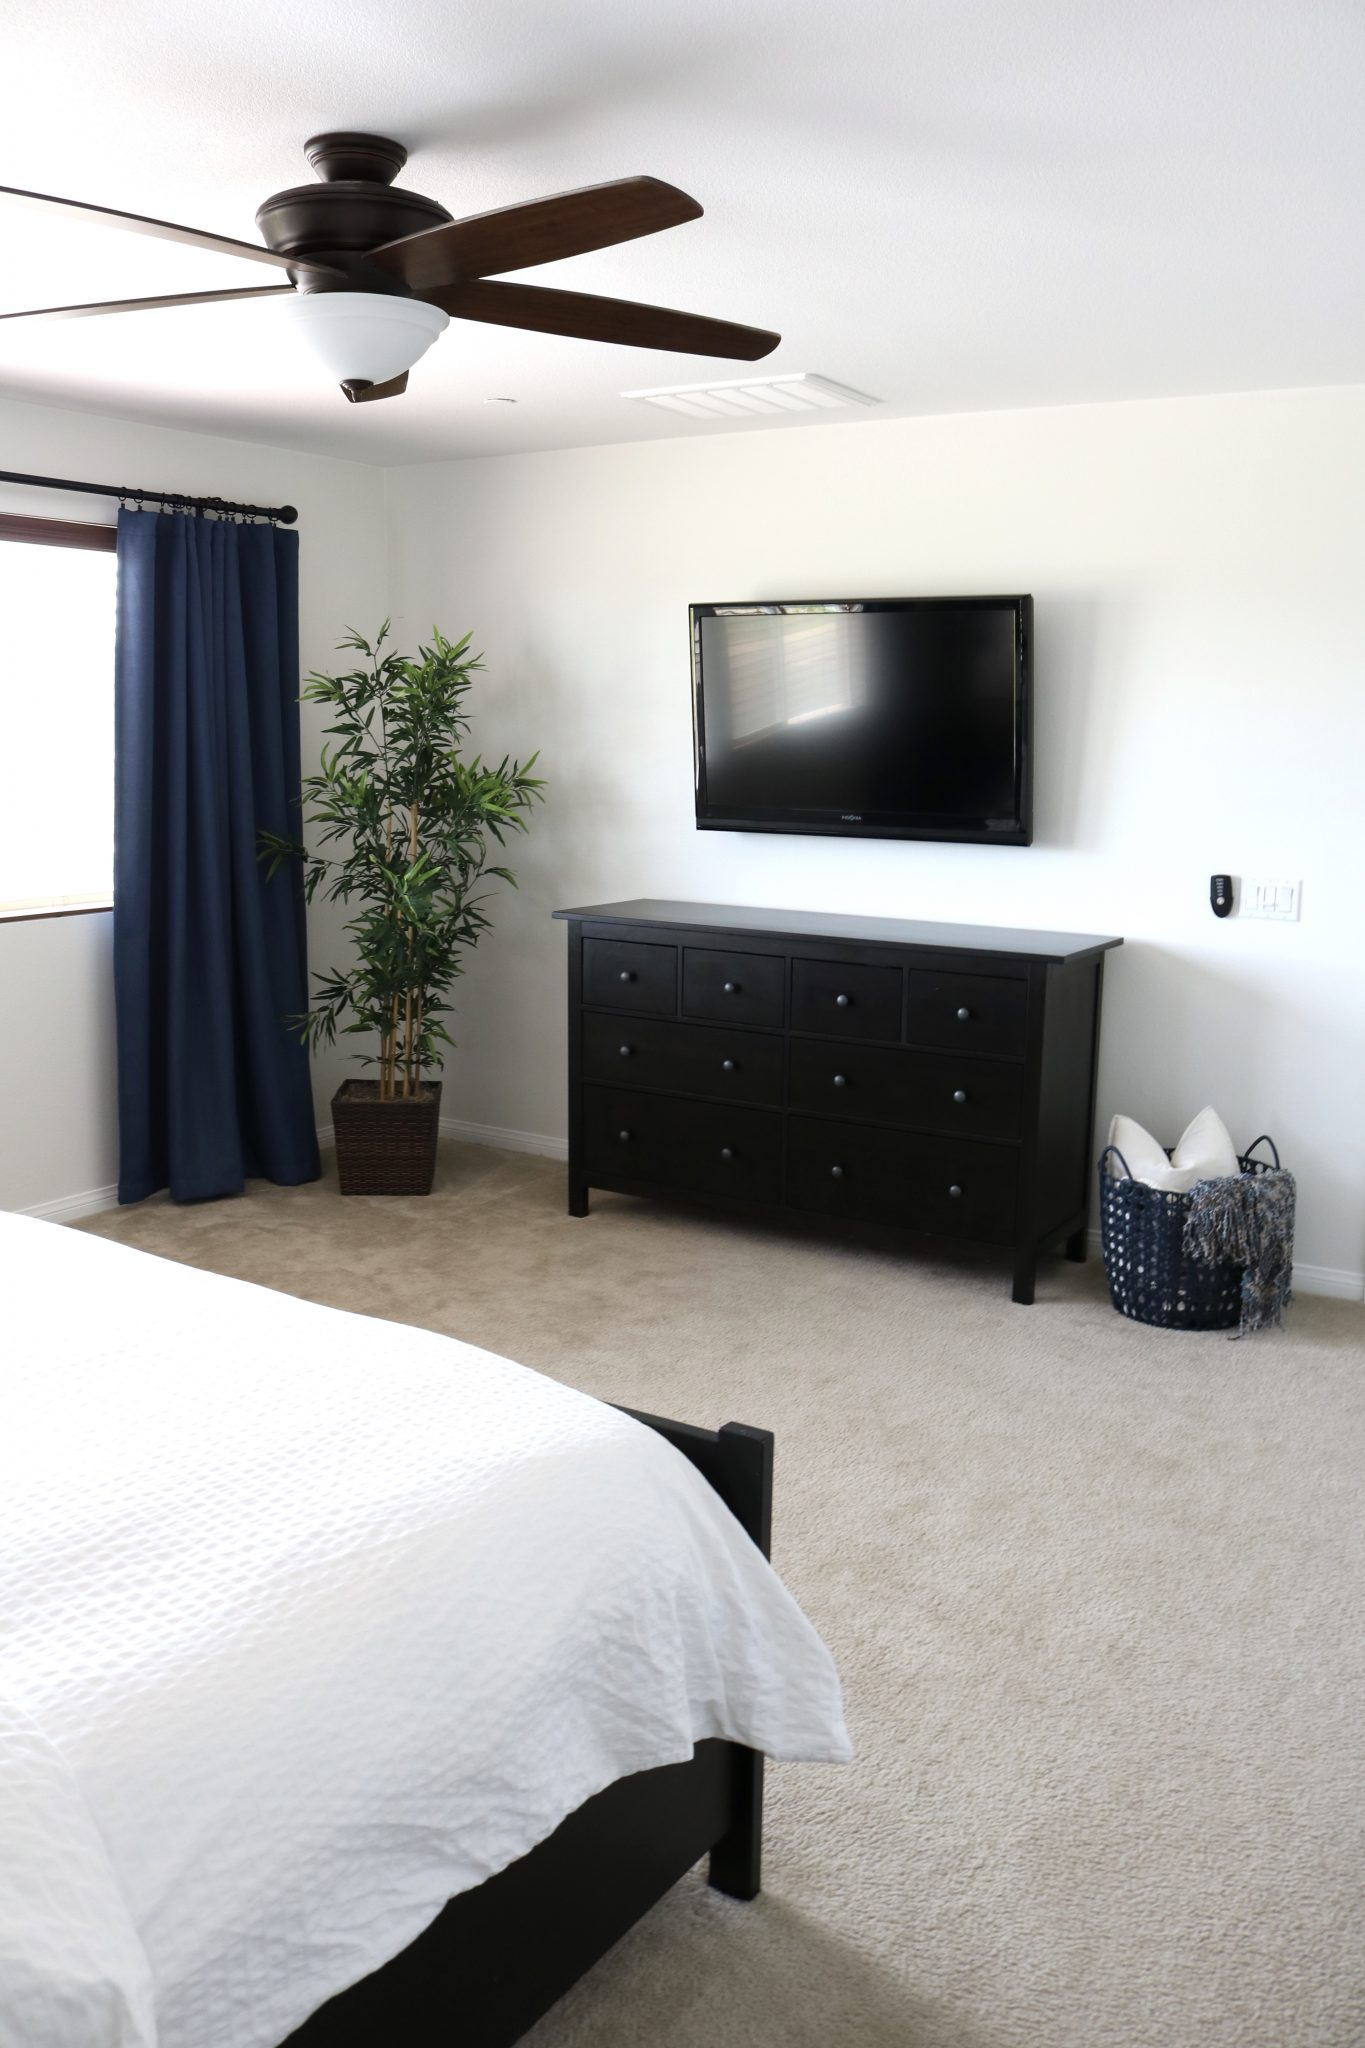 master bedroom makeover part 3 the reveal timber crow overall i m so happy with how the space turned out and happy that it s done it feels so fresh and bright now and the shiplap wall creates a great focal